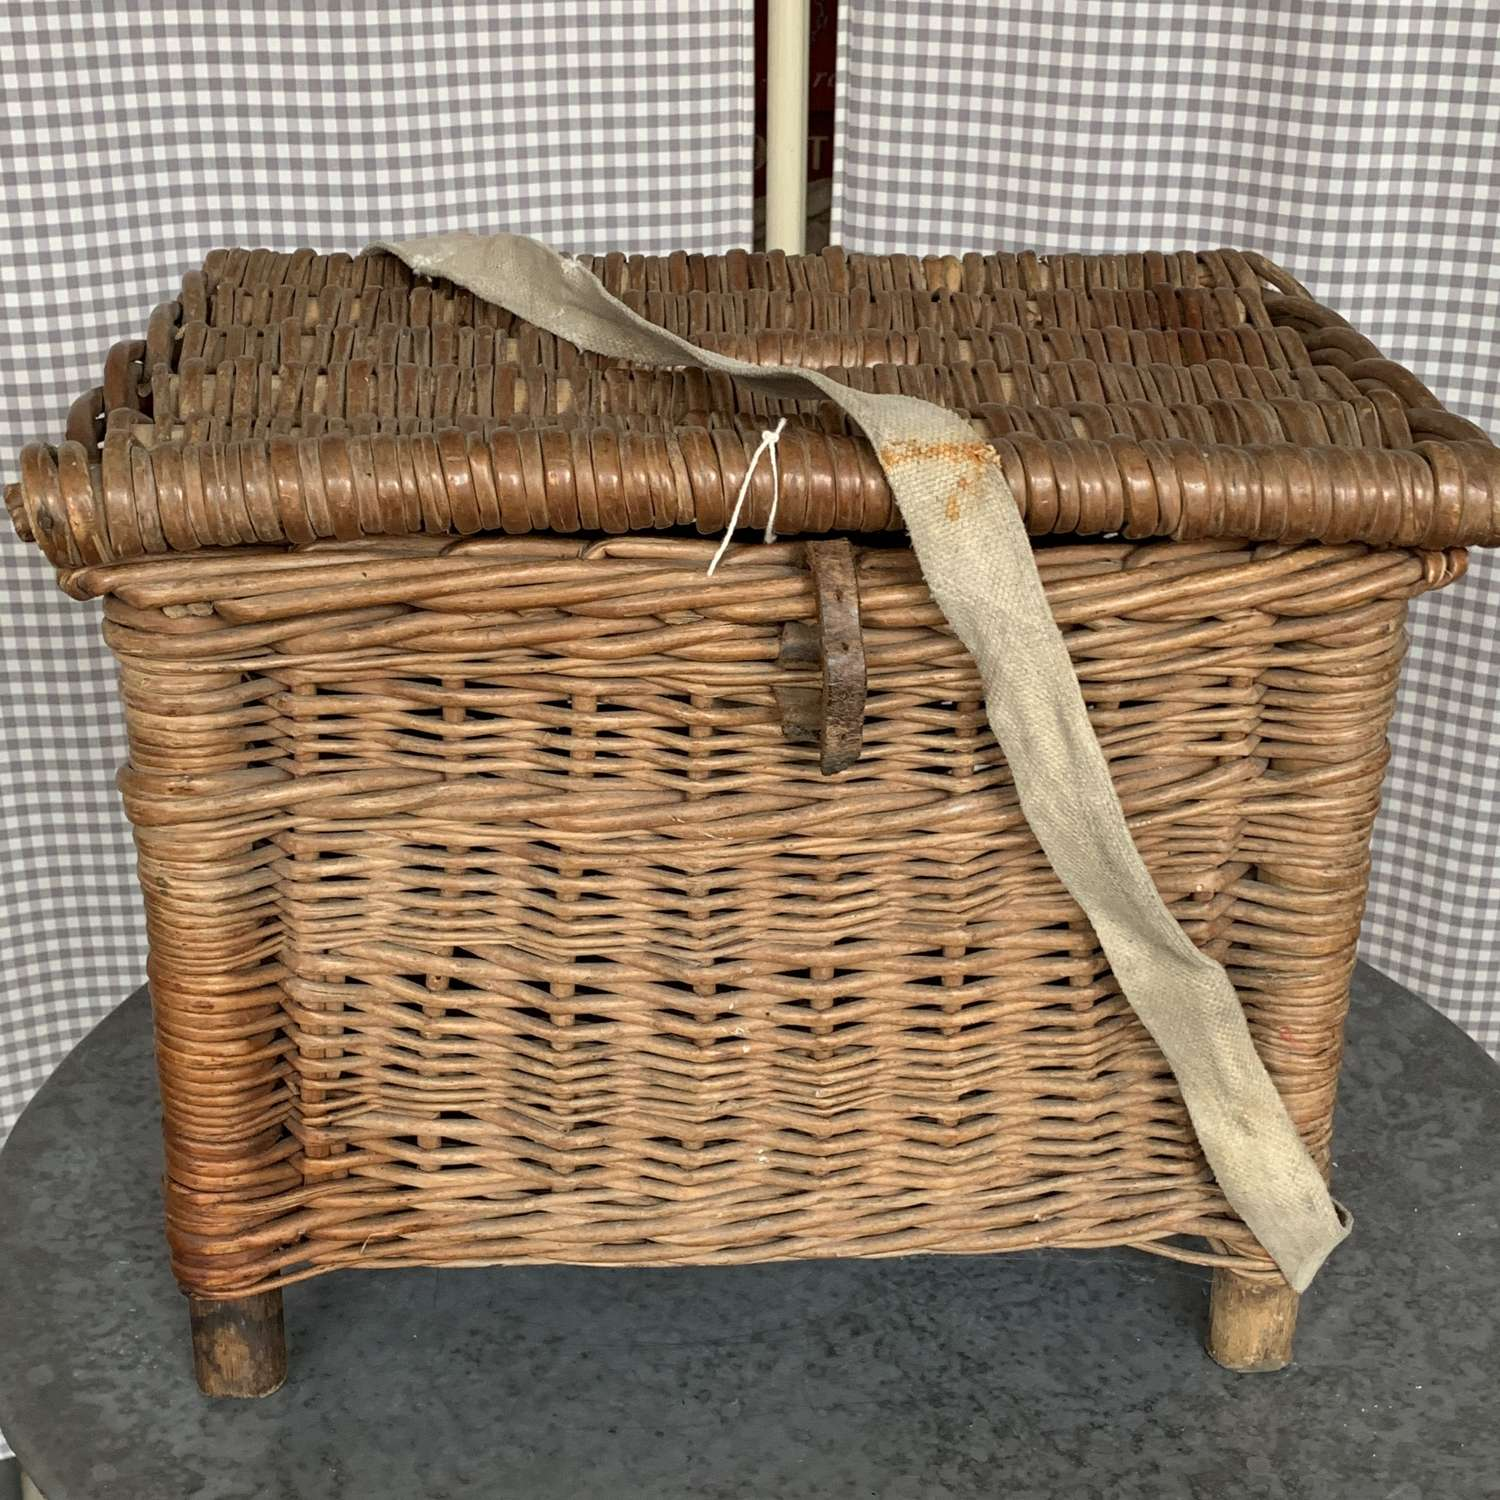 Vintage fishing basket with canvas strap